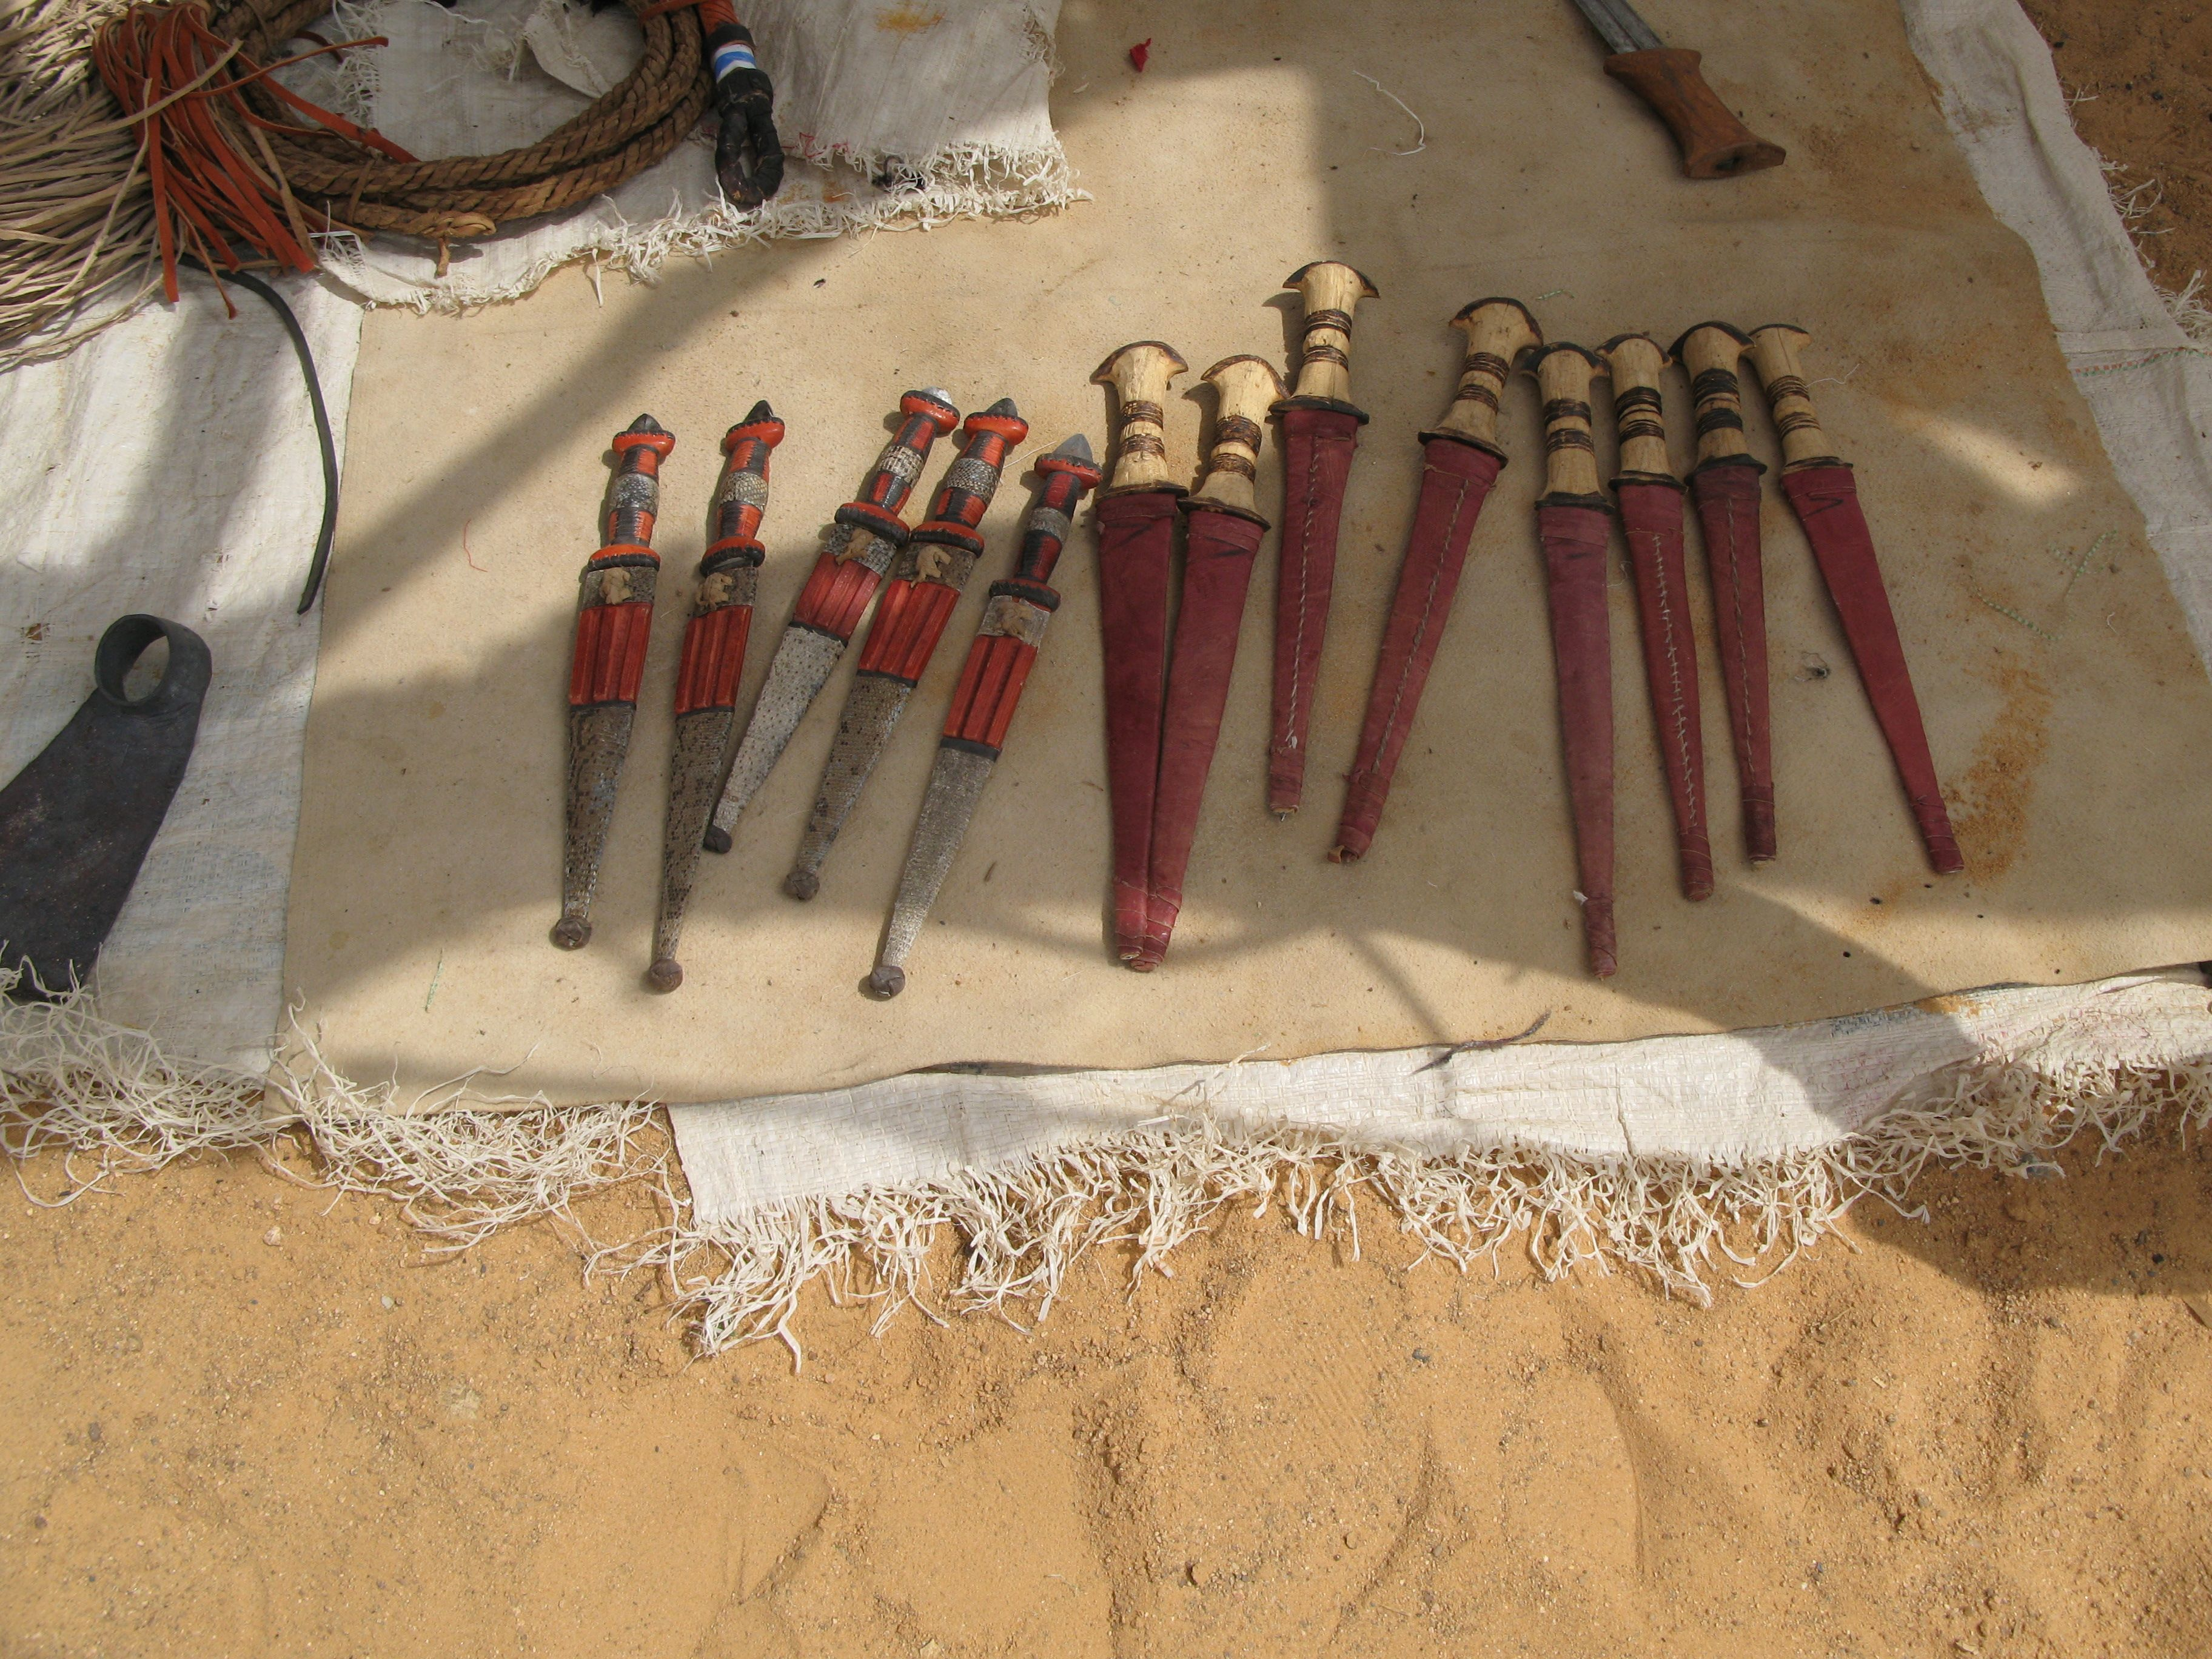 Knives and tools from the Oure Cassoni refugee camp in Chad near the border with Sudan